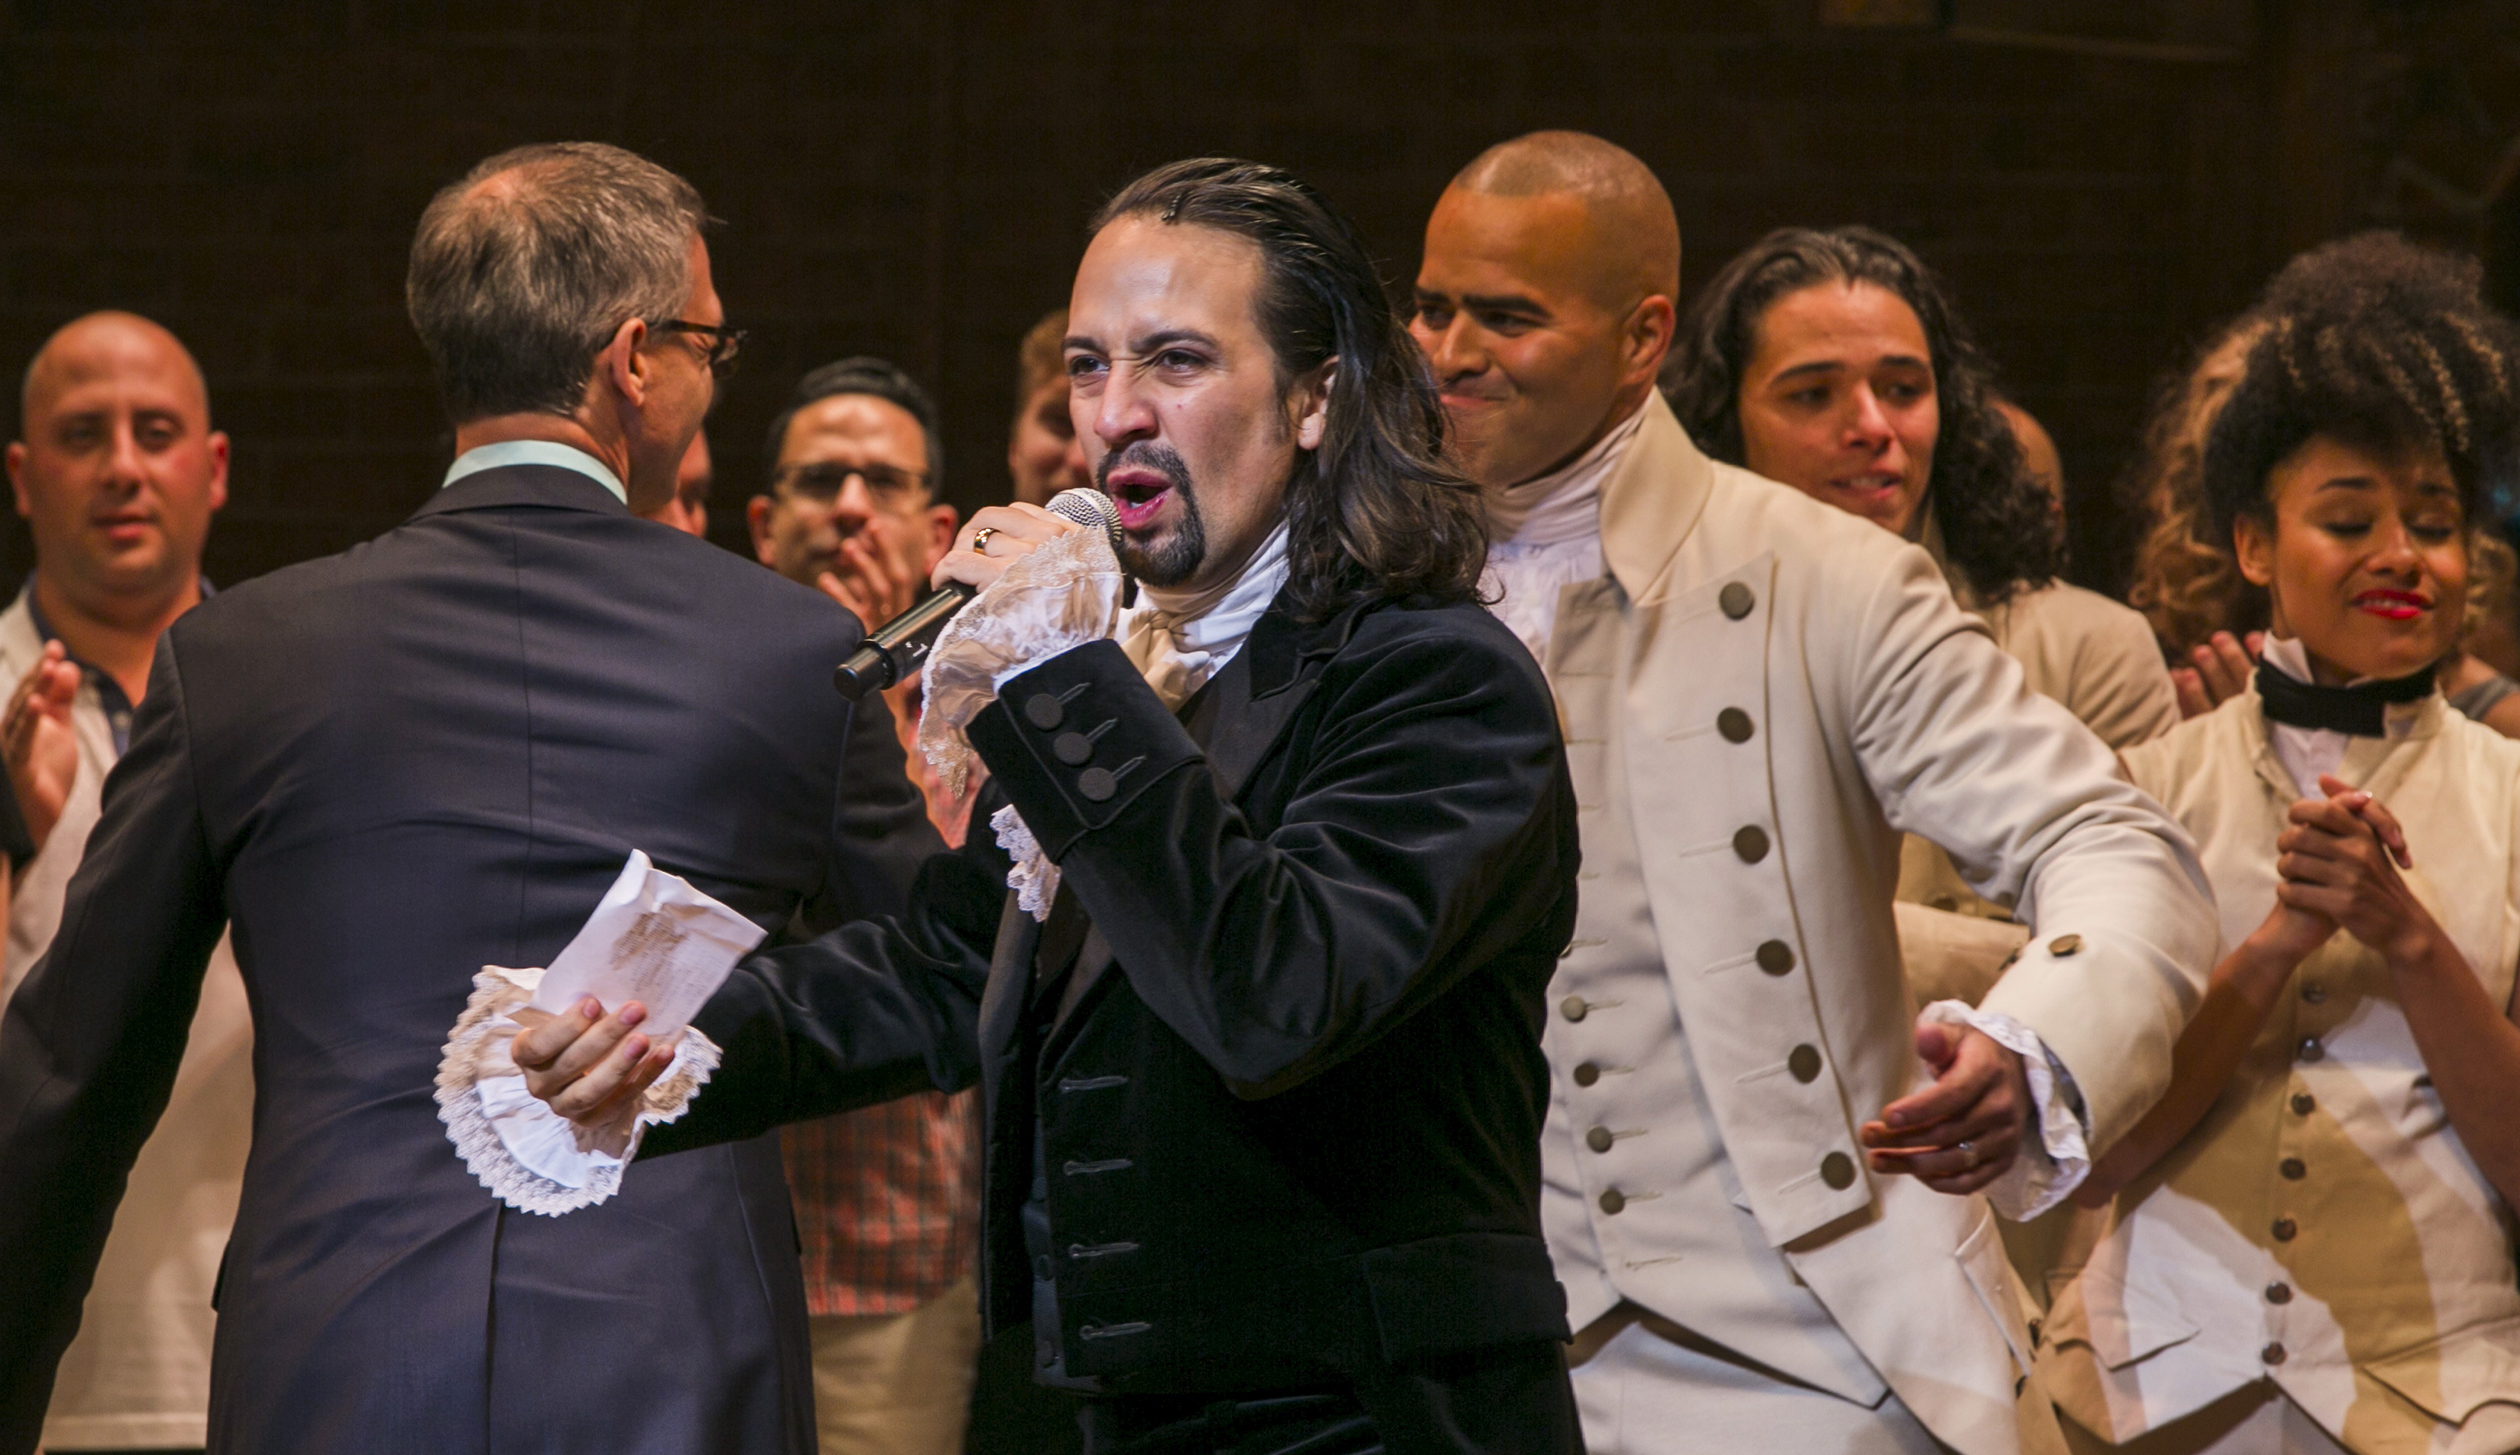 """Lin-Manuel Miranda, actor and creator of the of the play """"Hamilton,"""" addresses the audience after the plays opening night on Broadway in New York"""